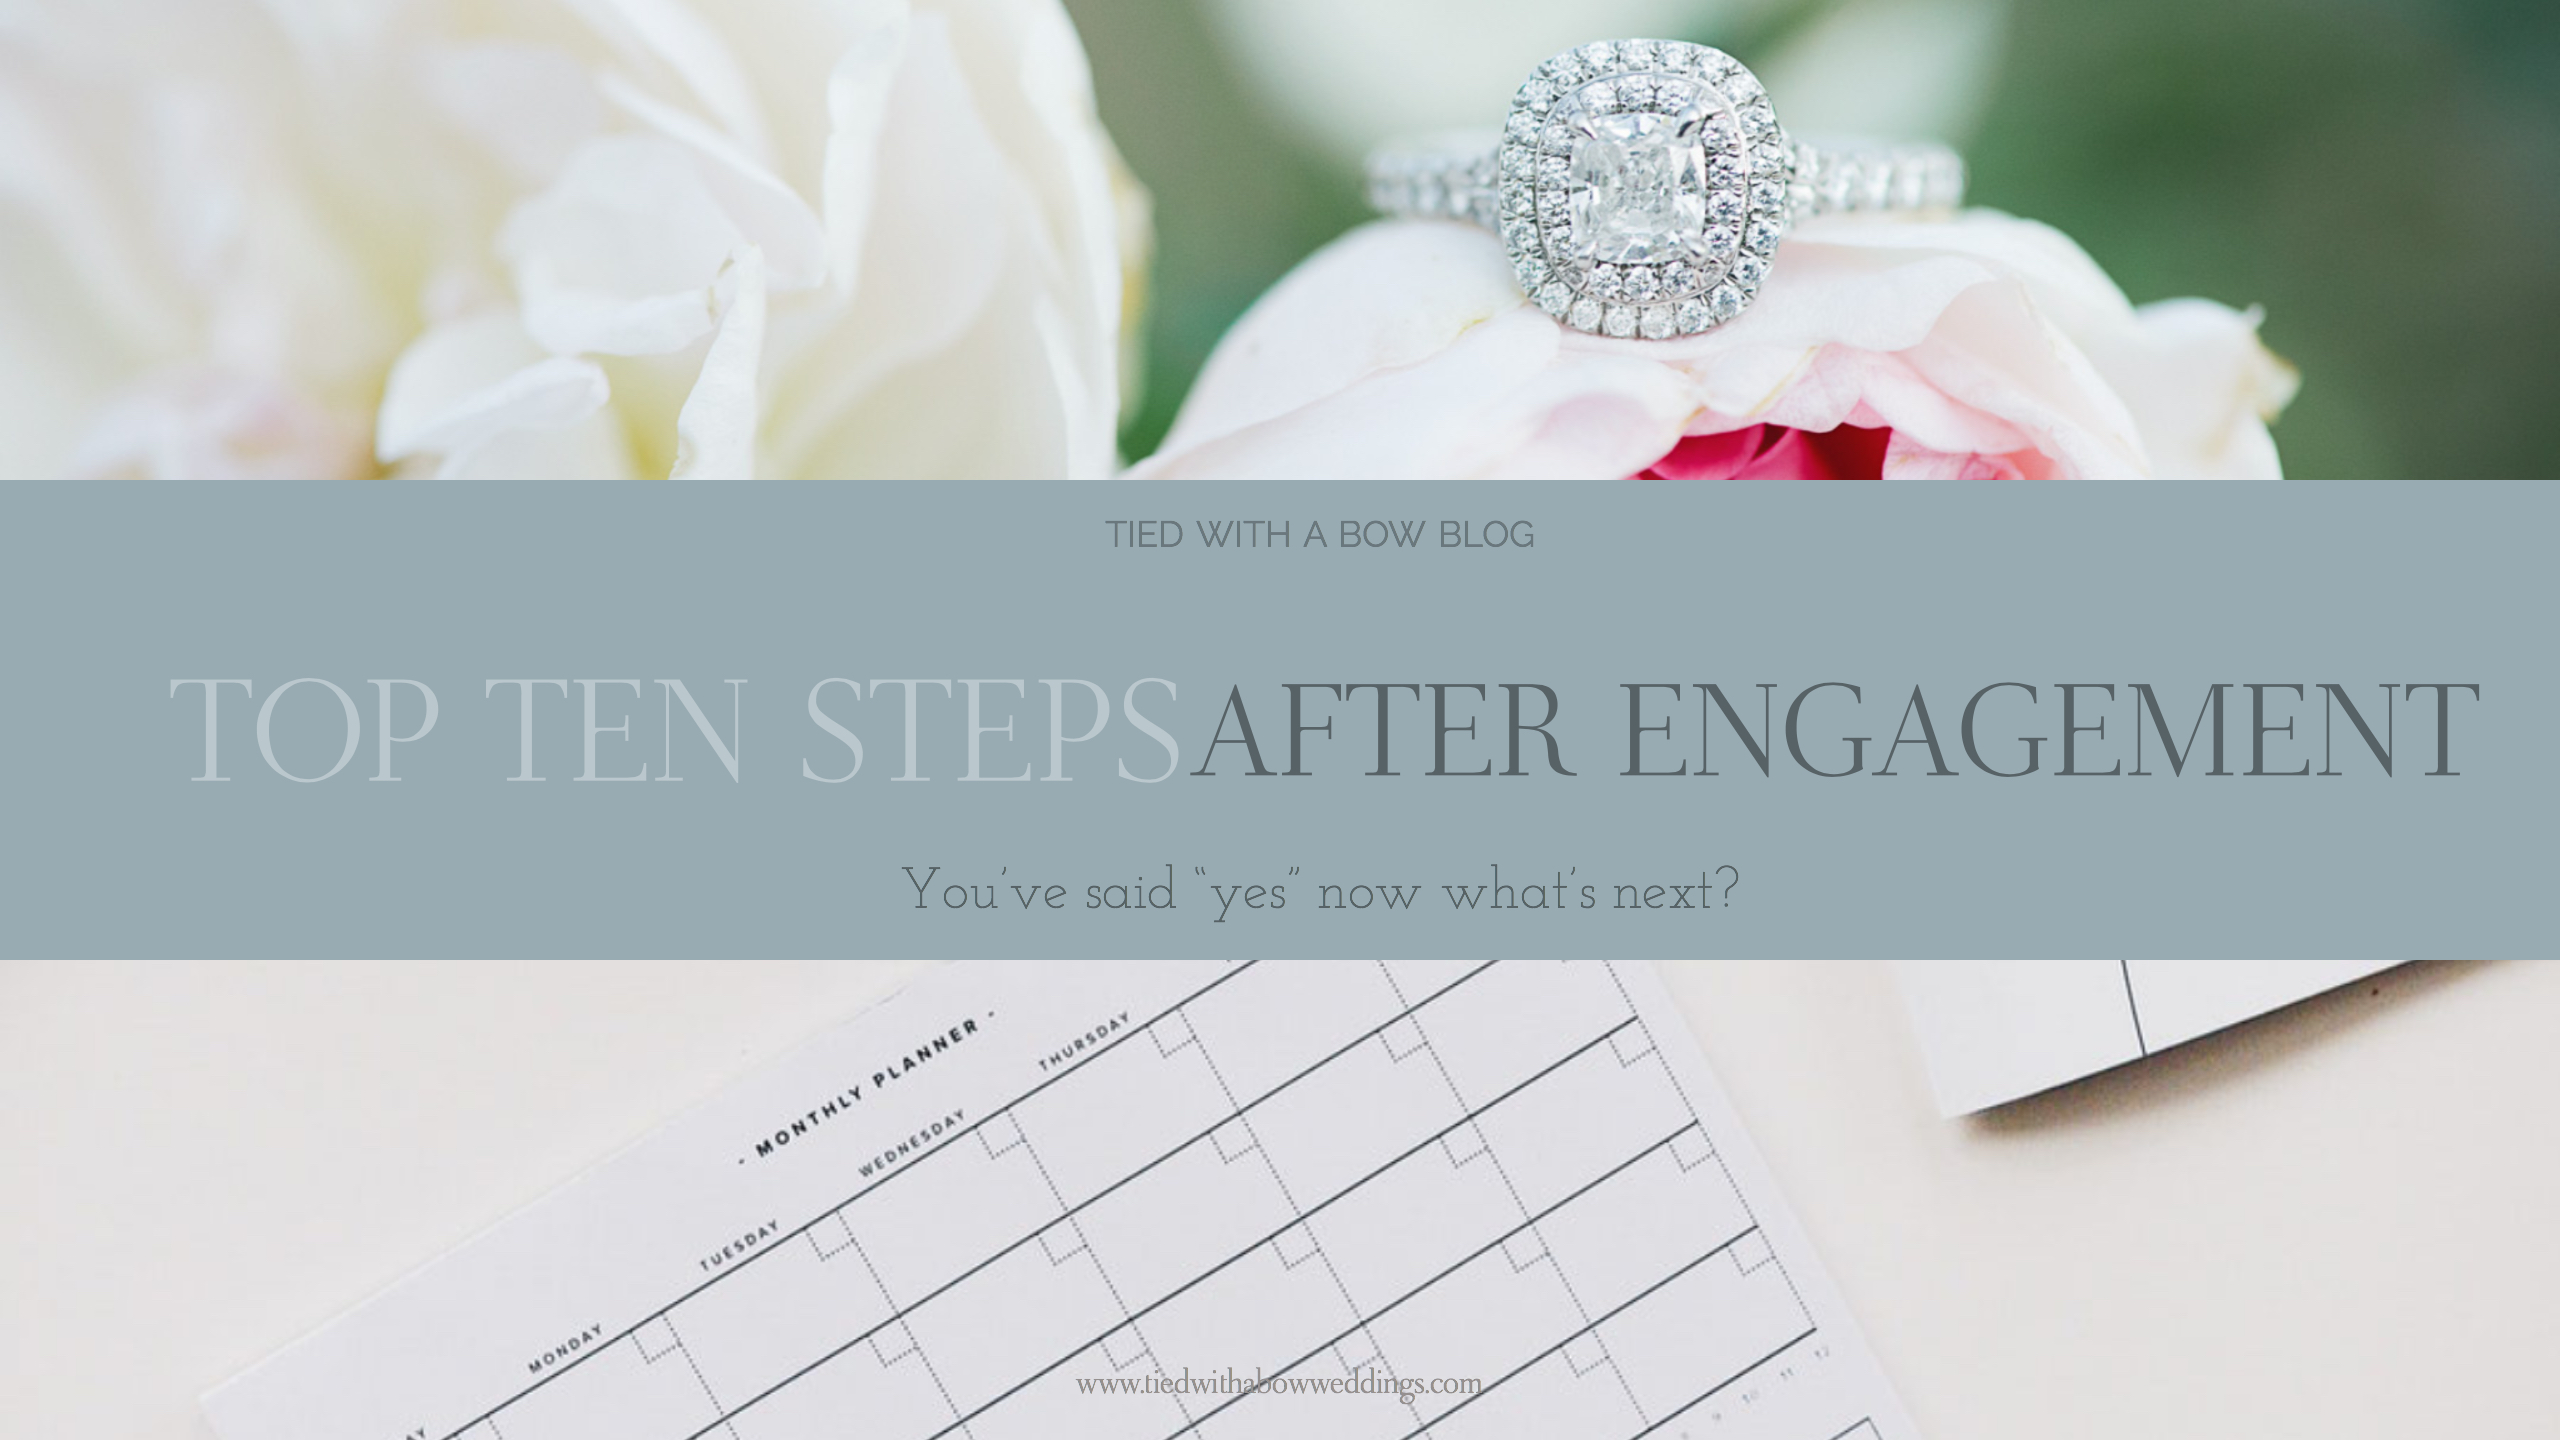 10 first steps after engagement